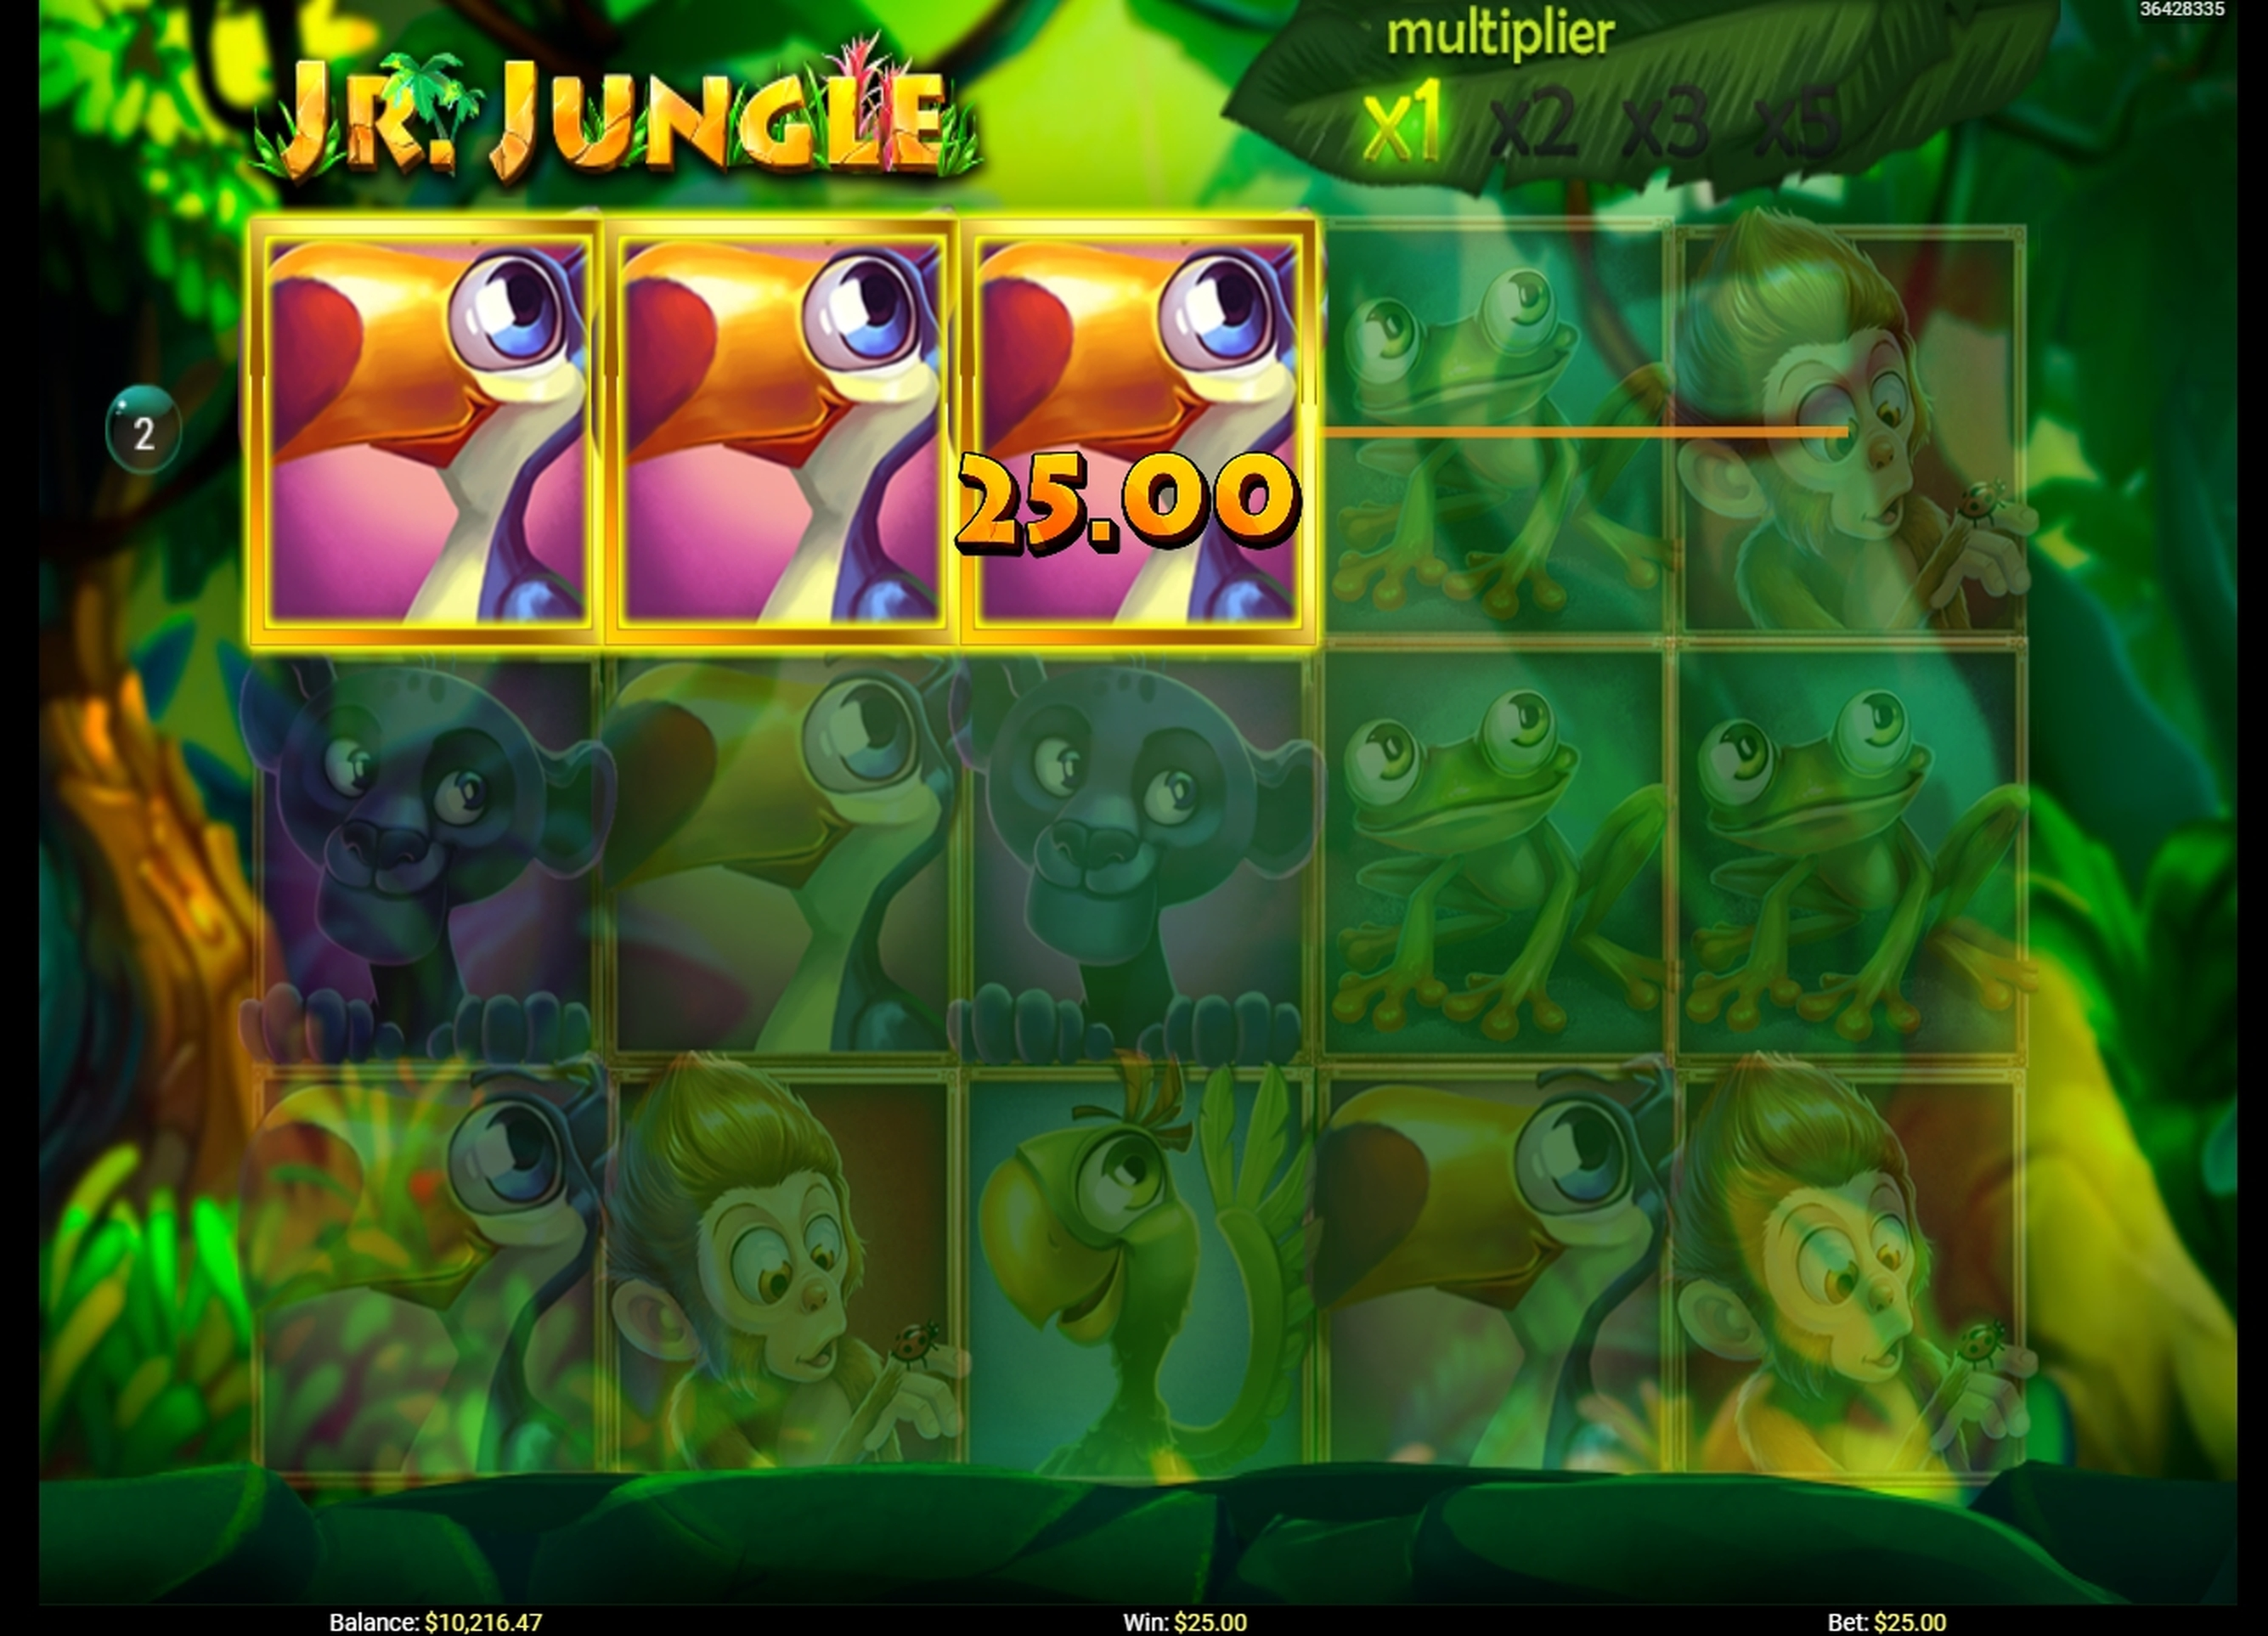 Win Money in Jr. Jungle Free Slot Game by Others